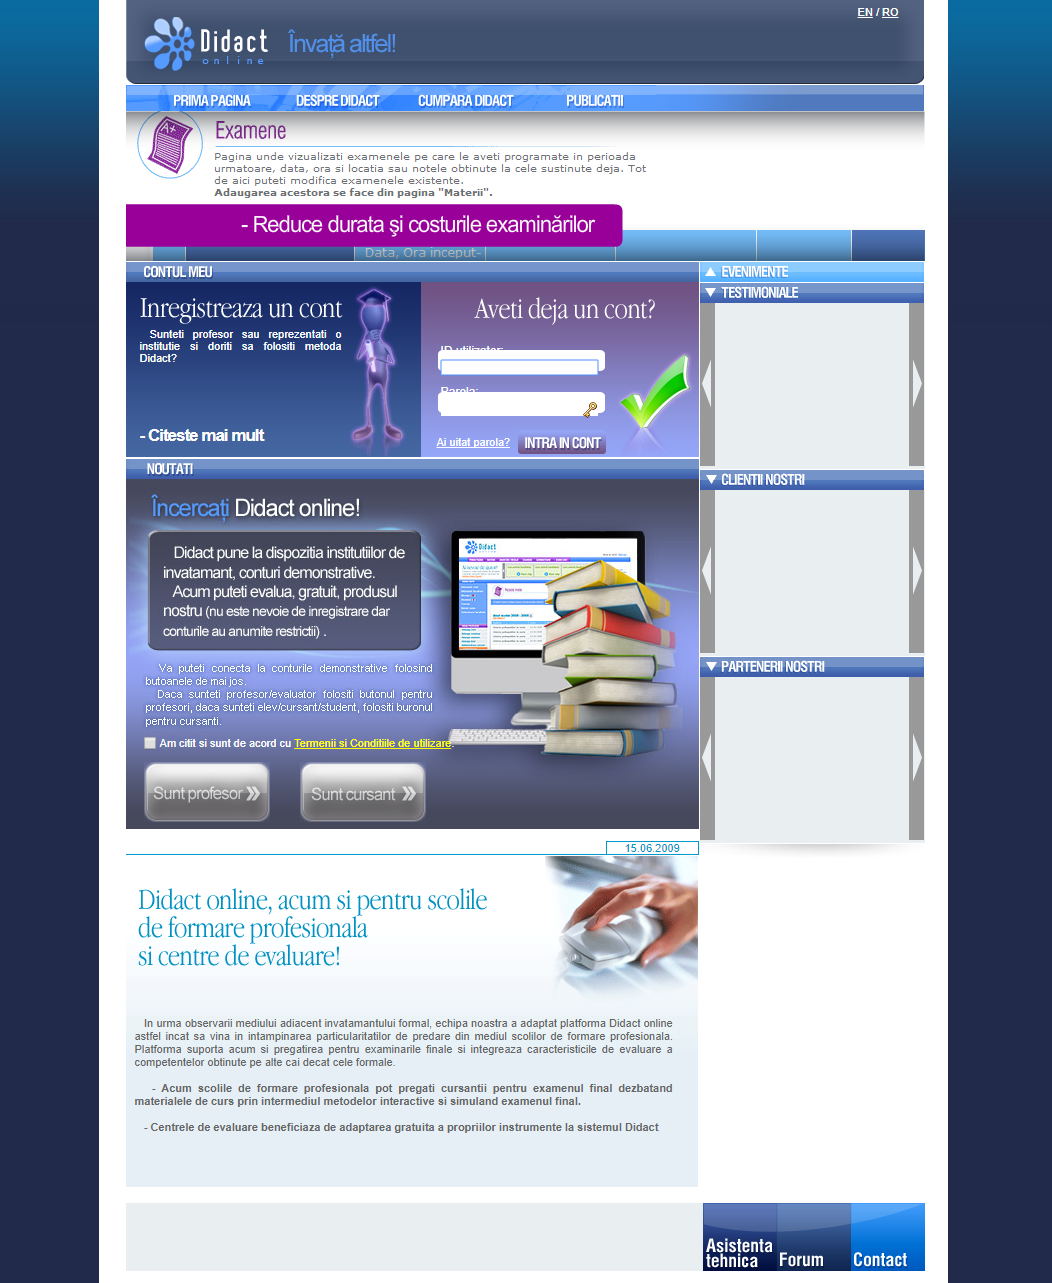 Didactonline - e-Learning & exams